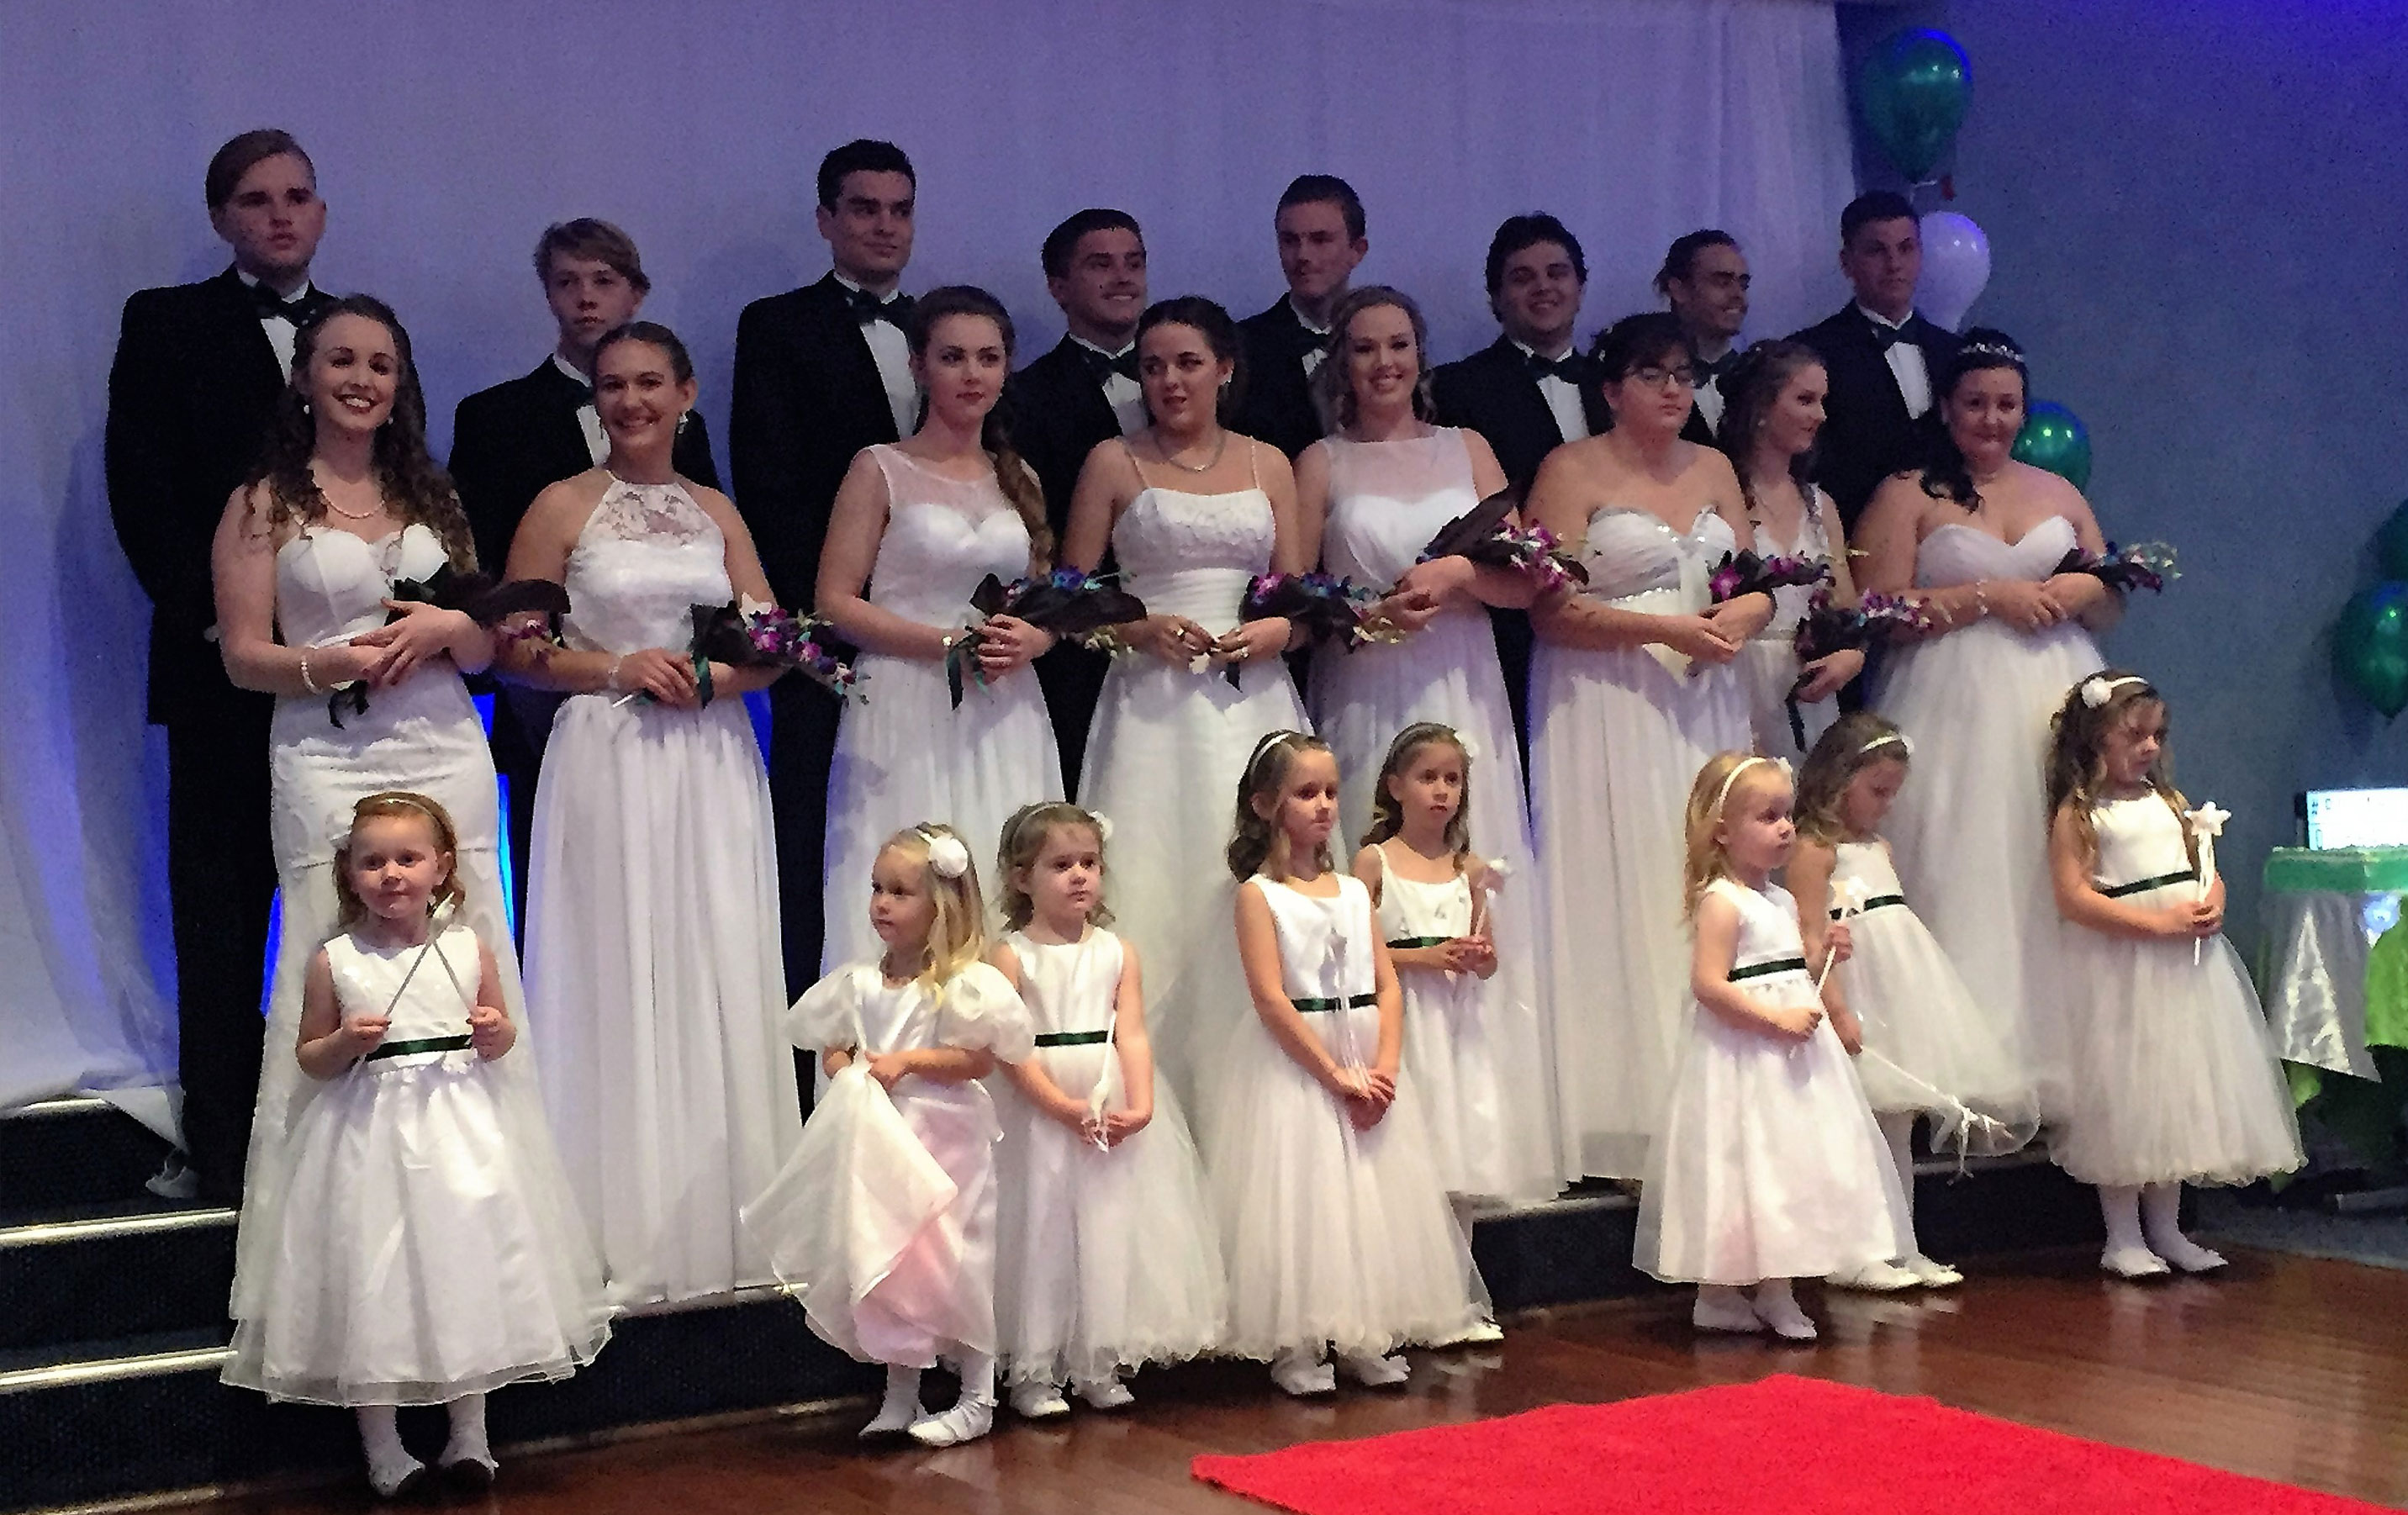 Sarah Rooney, Tamara Gooch, Taylor Garemyn, Bonnie Hay, Shae Finch, Alarnie Hawkins, Bianca Mason and Keahne Hurtado with their partners and flower girls.